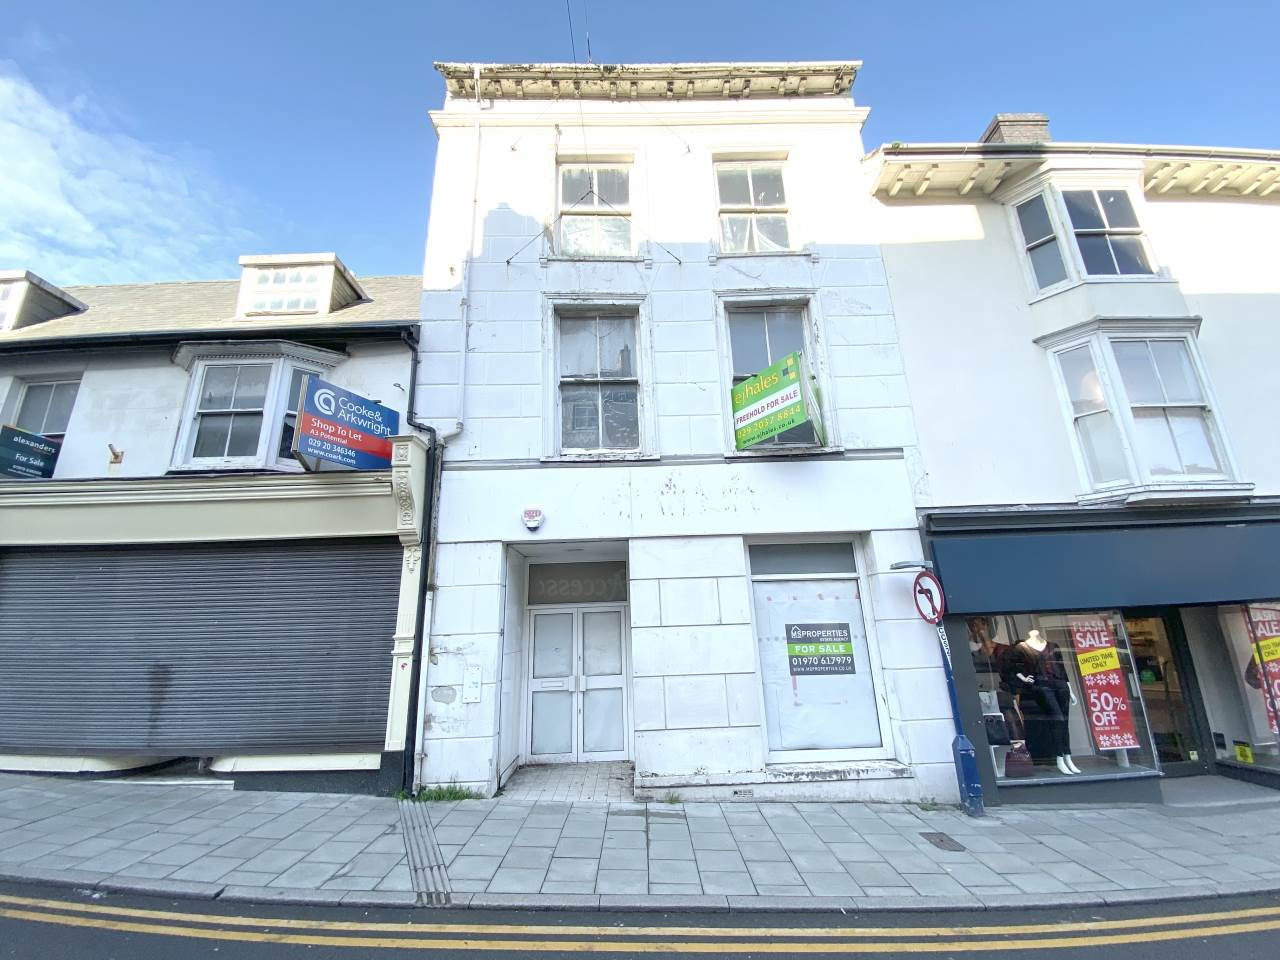 Commercial property for sale in Great Darkgate Street, Aberystwyth 0